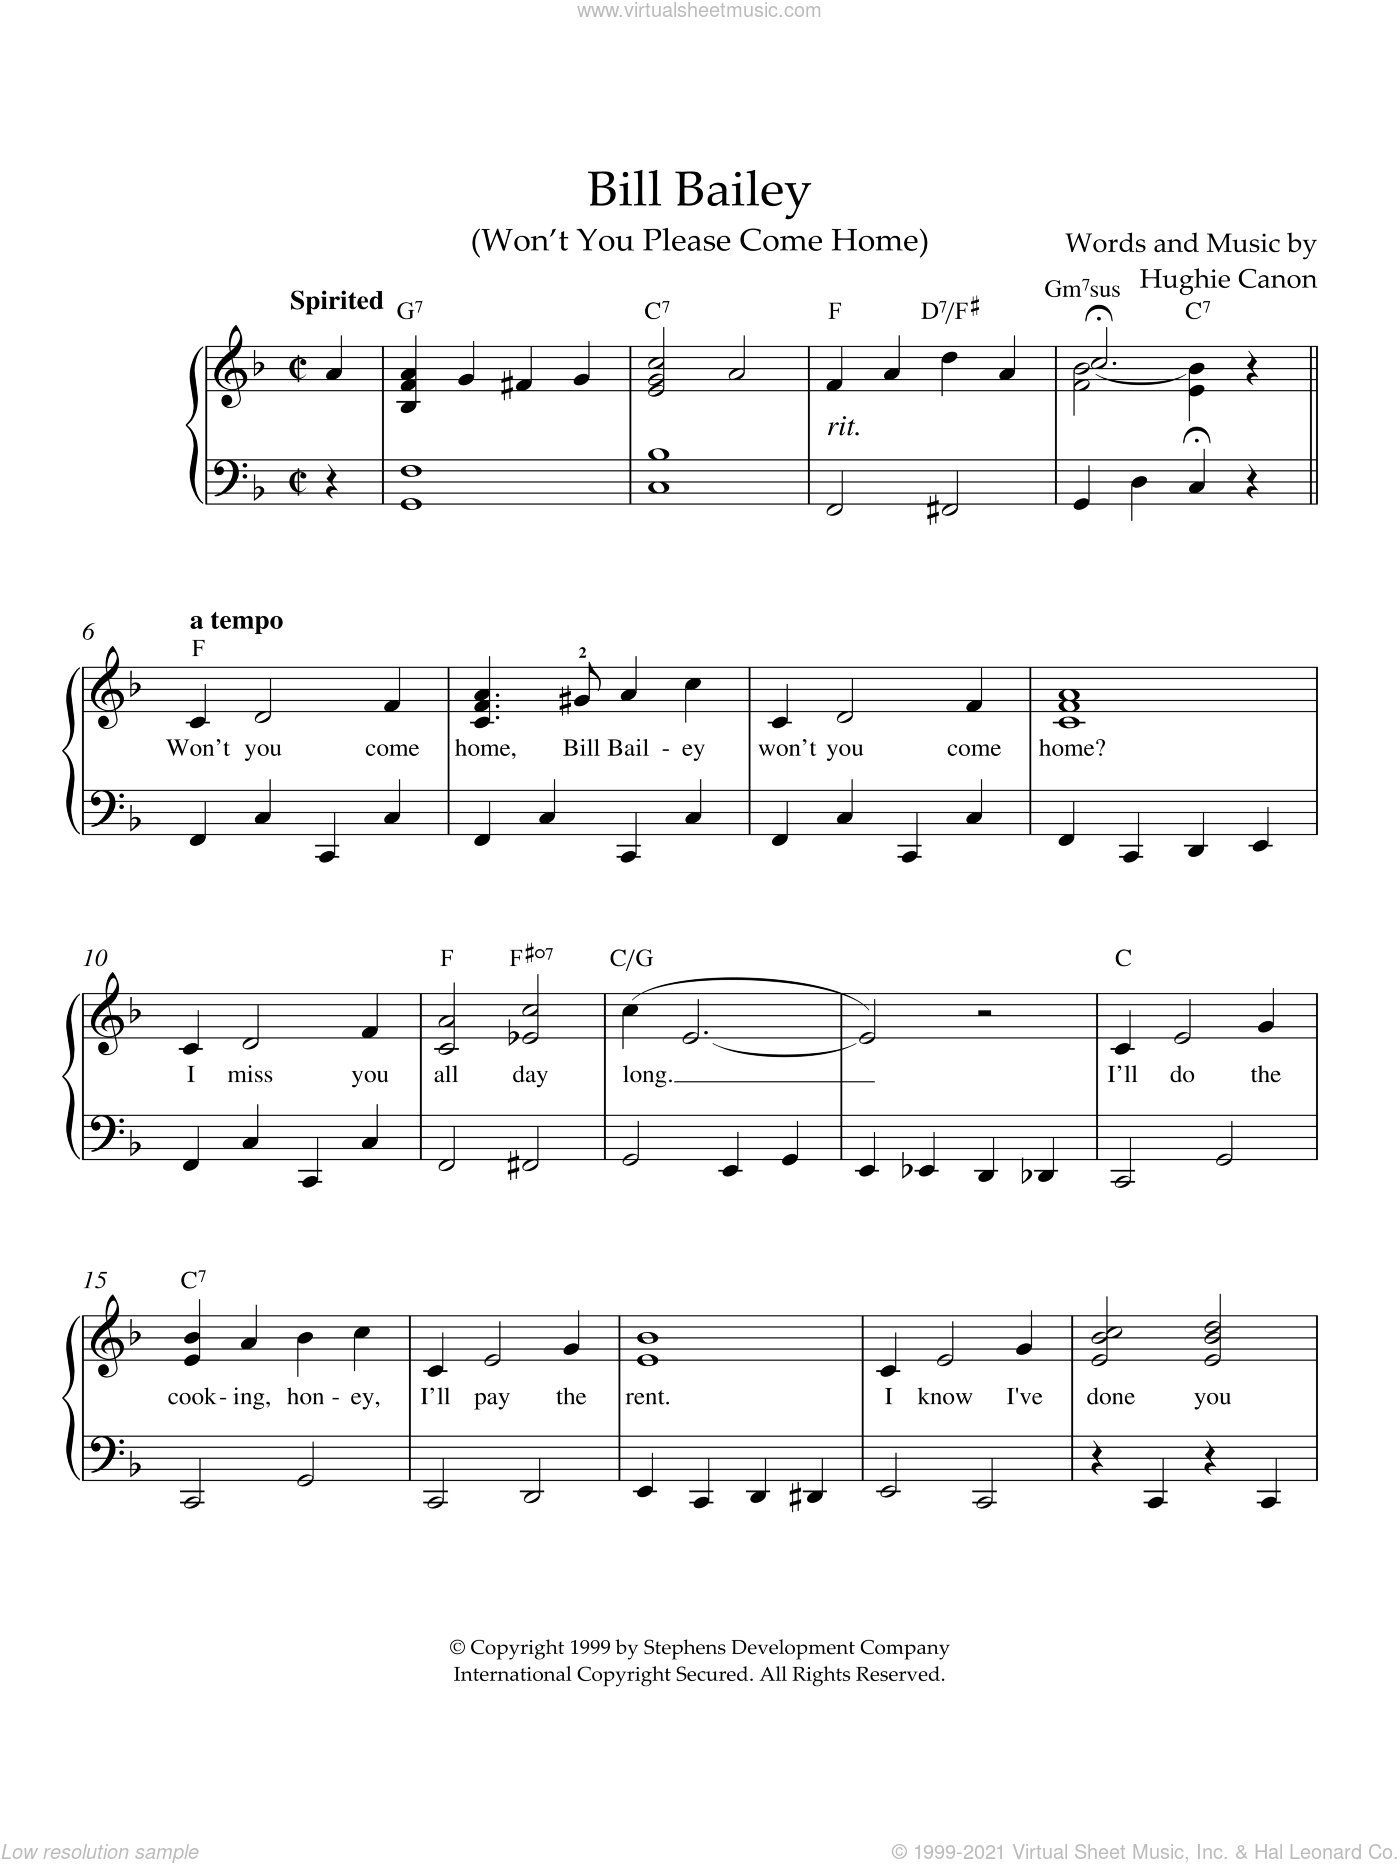 Bill Bailey (Won't You Please Come Home) sheet music for piano solo by Johann Pachelbel, intermediate skill level